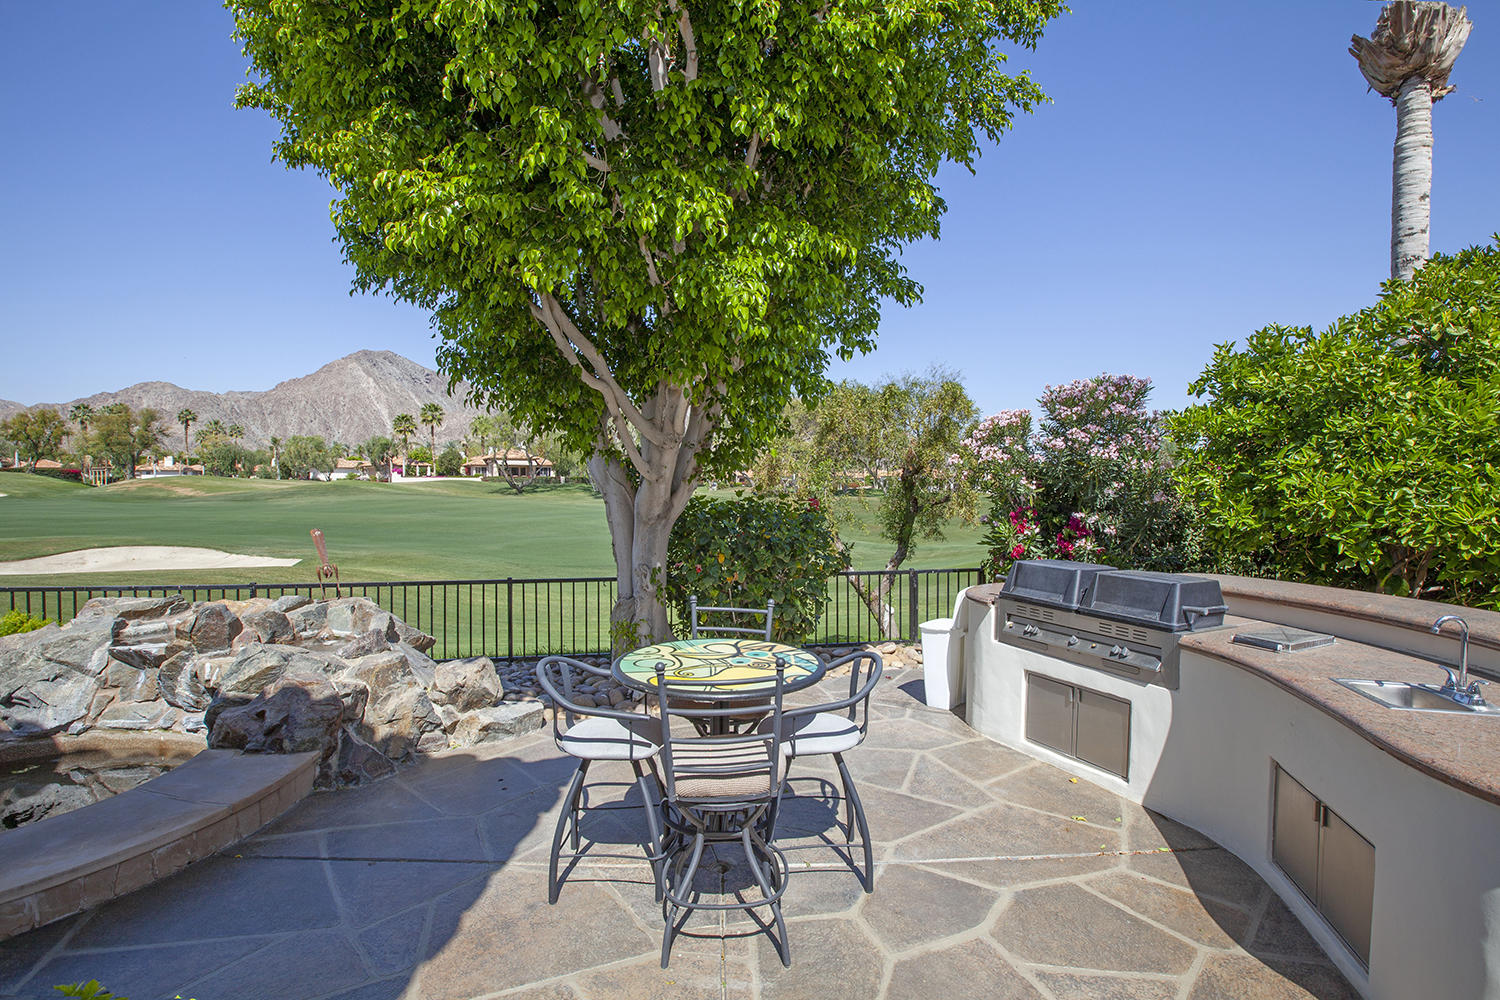 48305 Paso Tiempo Lane, La Quinta, California 92253, 4 Bedrooms Bedrooms, ,5 BathroomsBathrooms,Residential,For Sale,48305 Paso Tiempo Lane,219041583